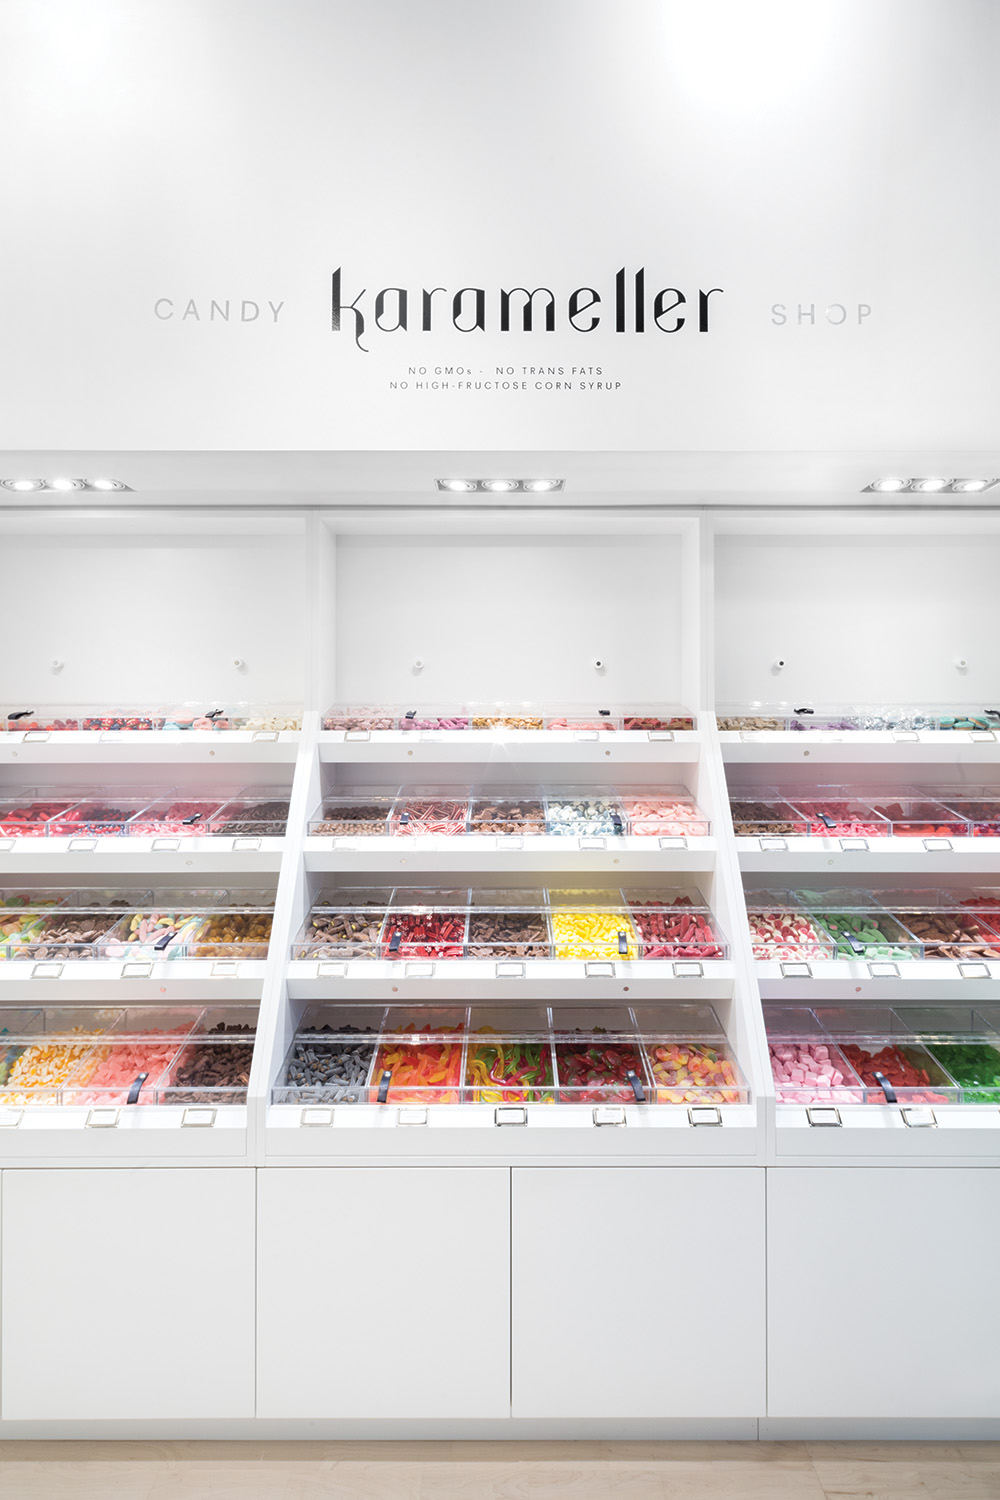 Karameller Candy Shop, Vancouver. (Photo: Ema Peter.)